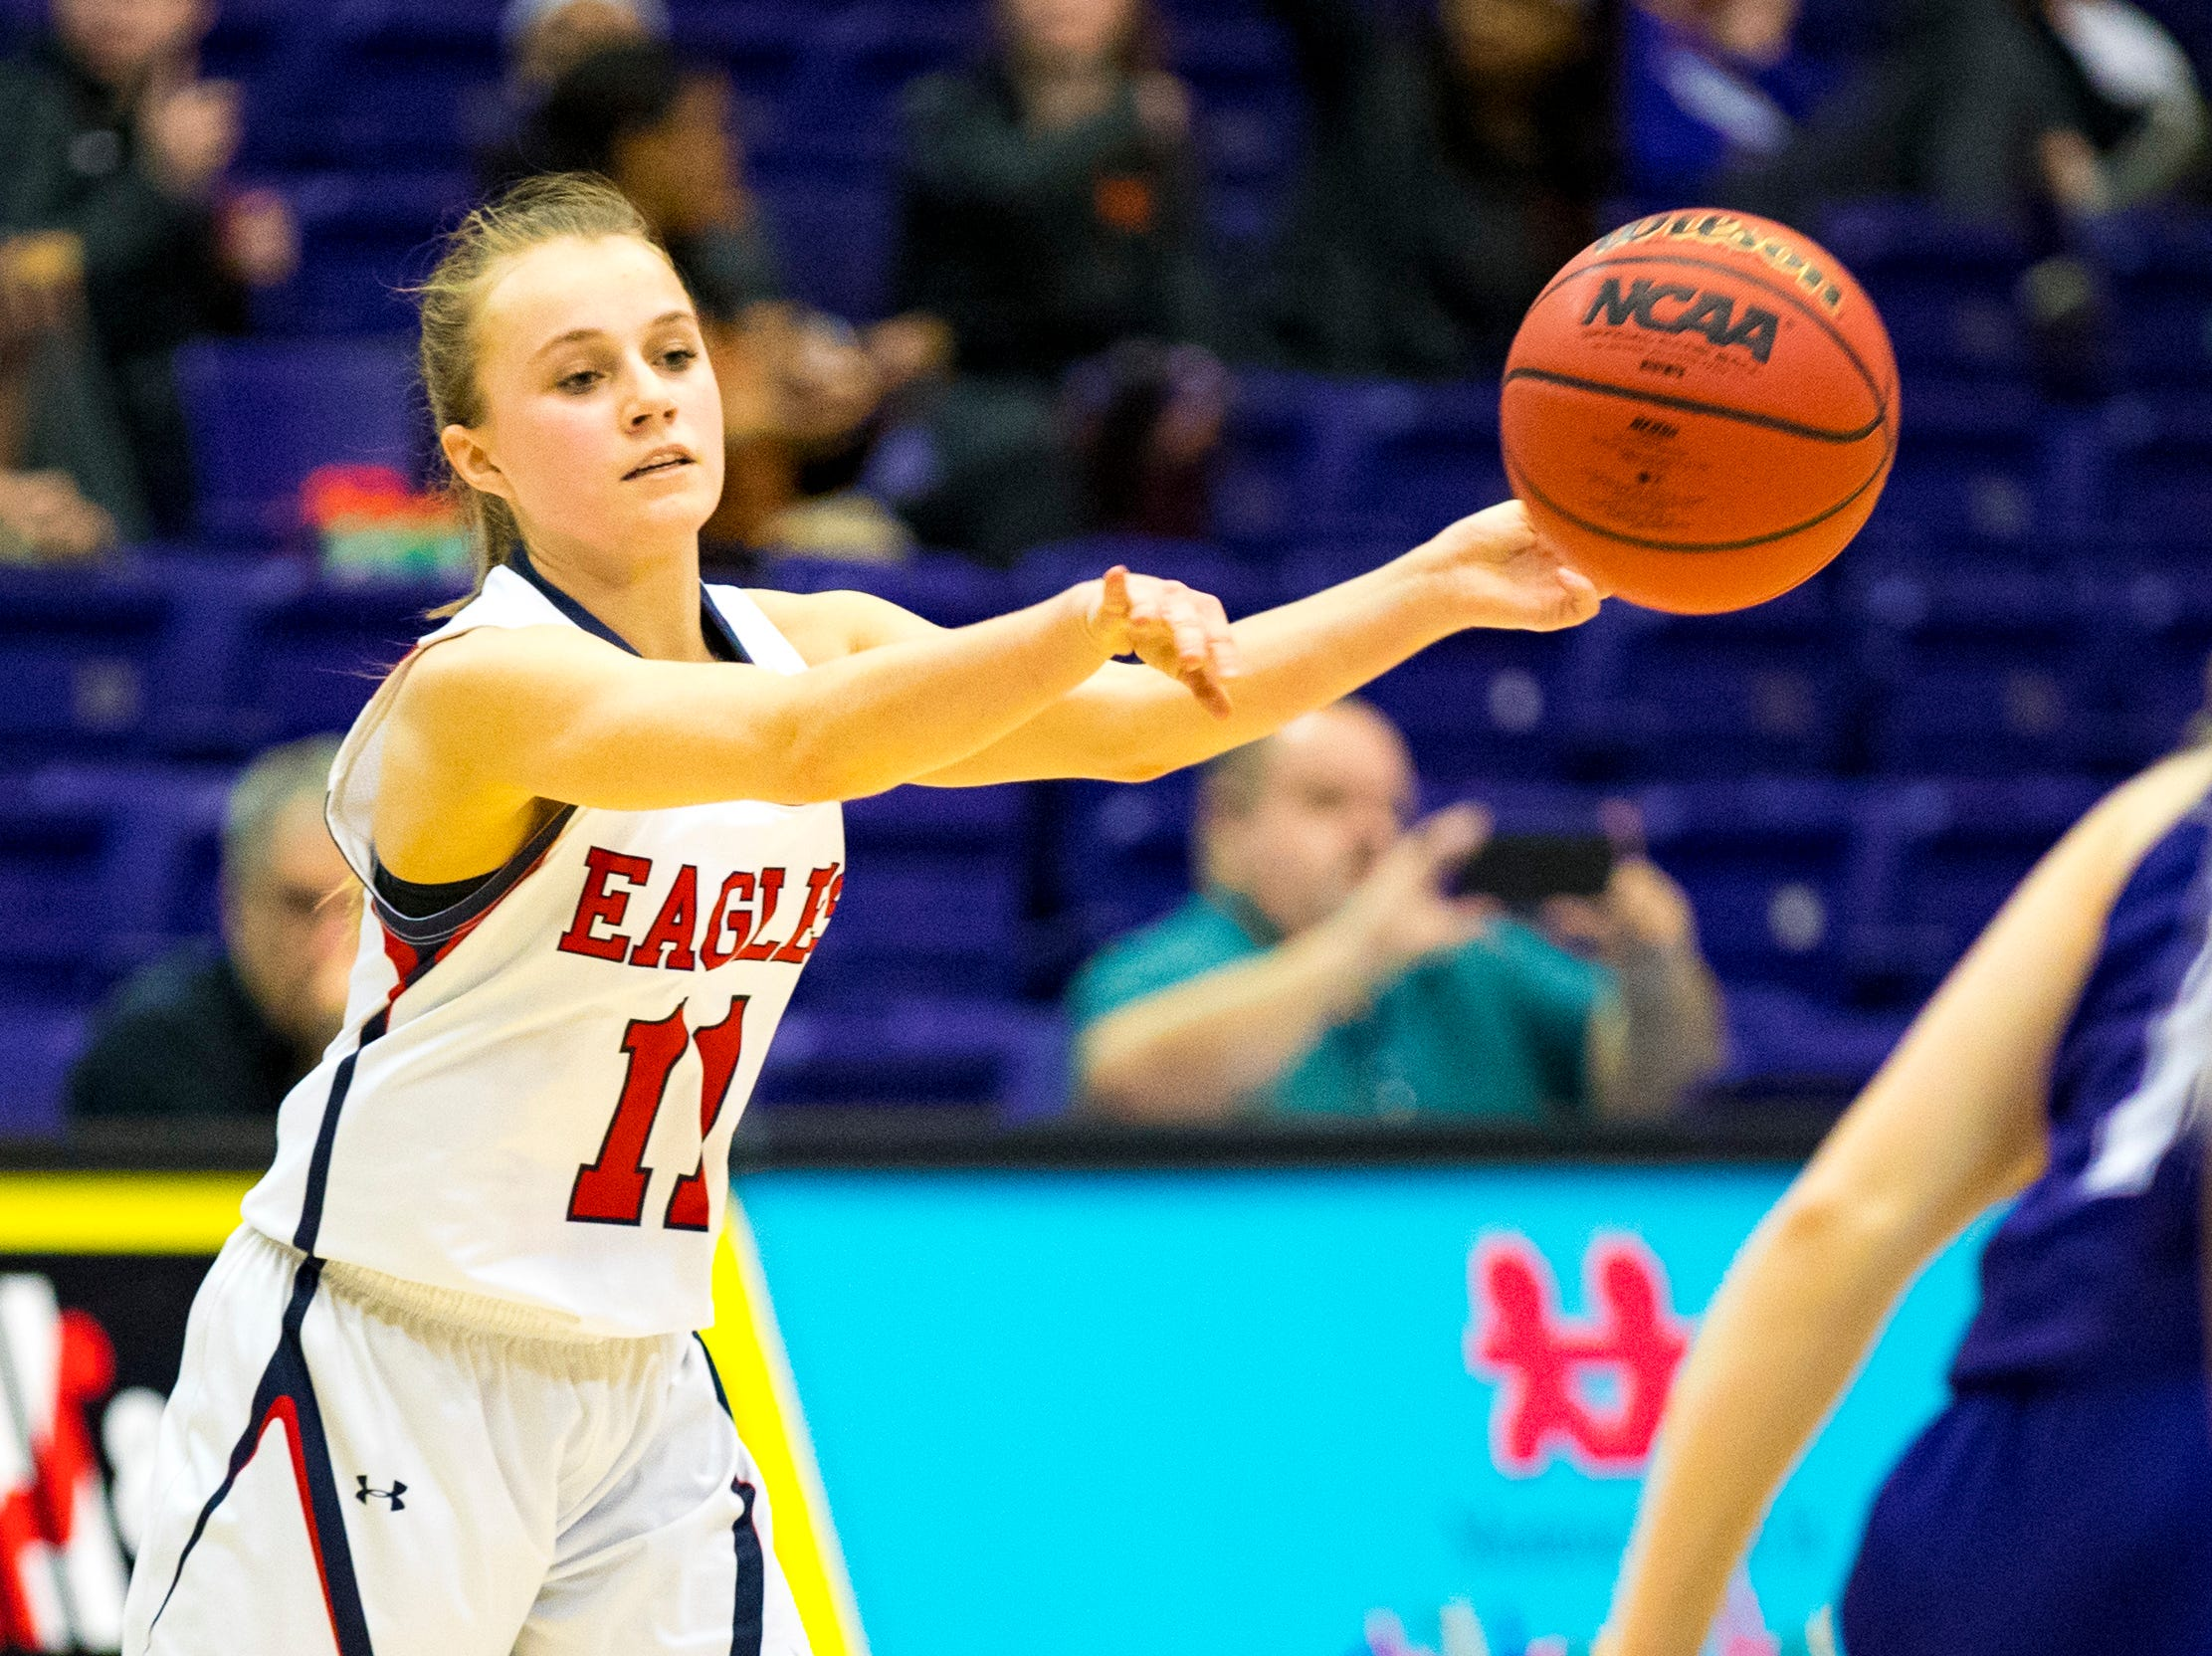 Brentwood Academy's Millie Brown (11) passes during Brentwood Academy's game against Father Ryan in the semifinal round of the TSSAA Division II Class AA State Championships at Lipscomb University's Allen Arena in Nashville on Thursday, Feb. 28, 2019.